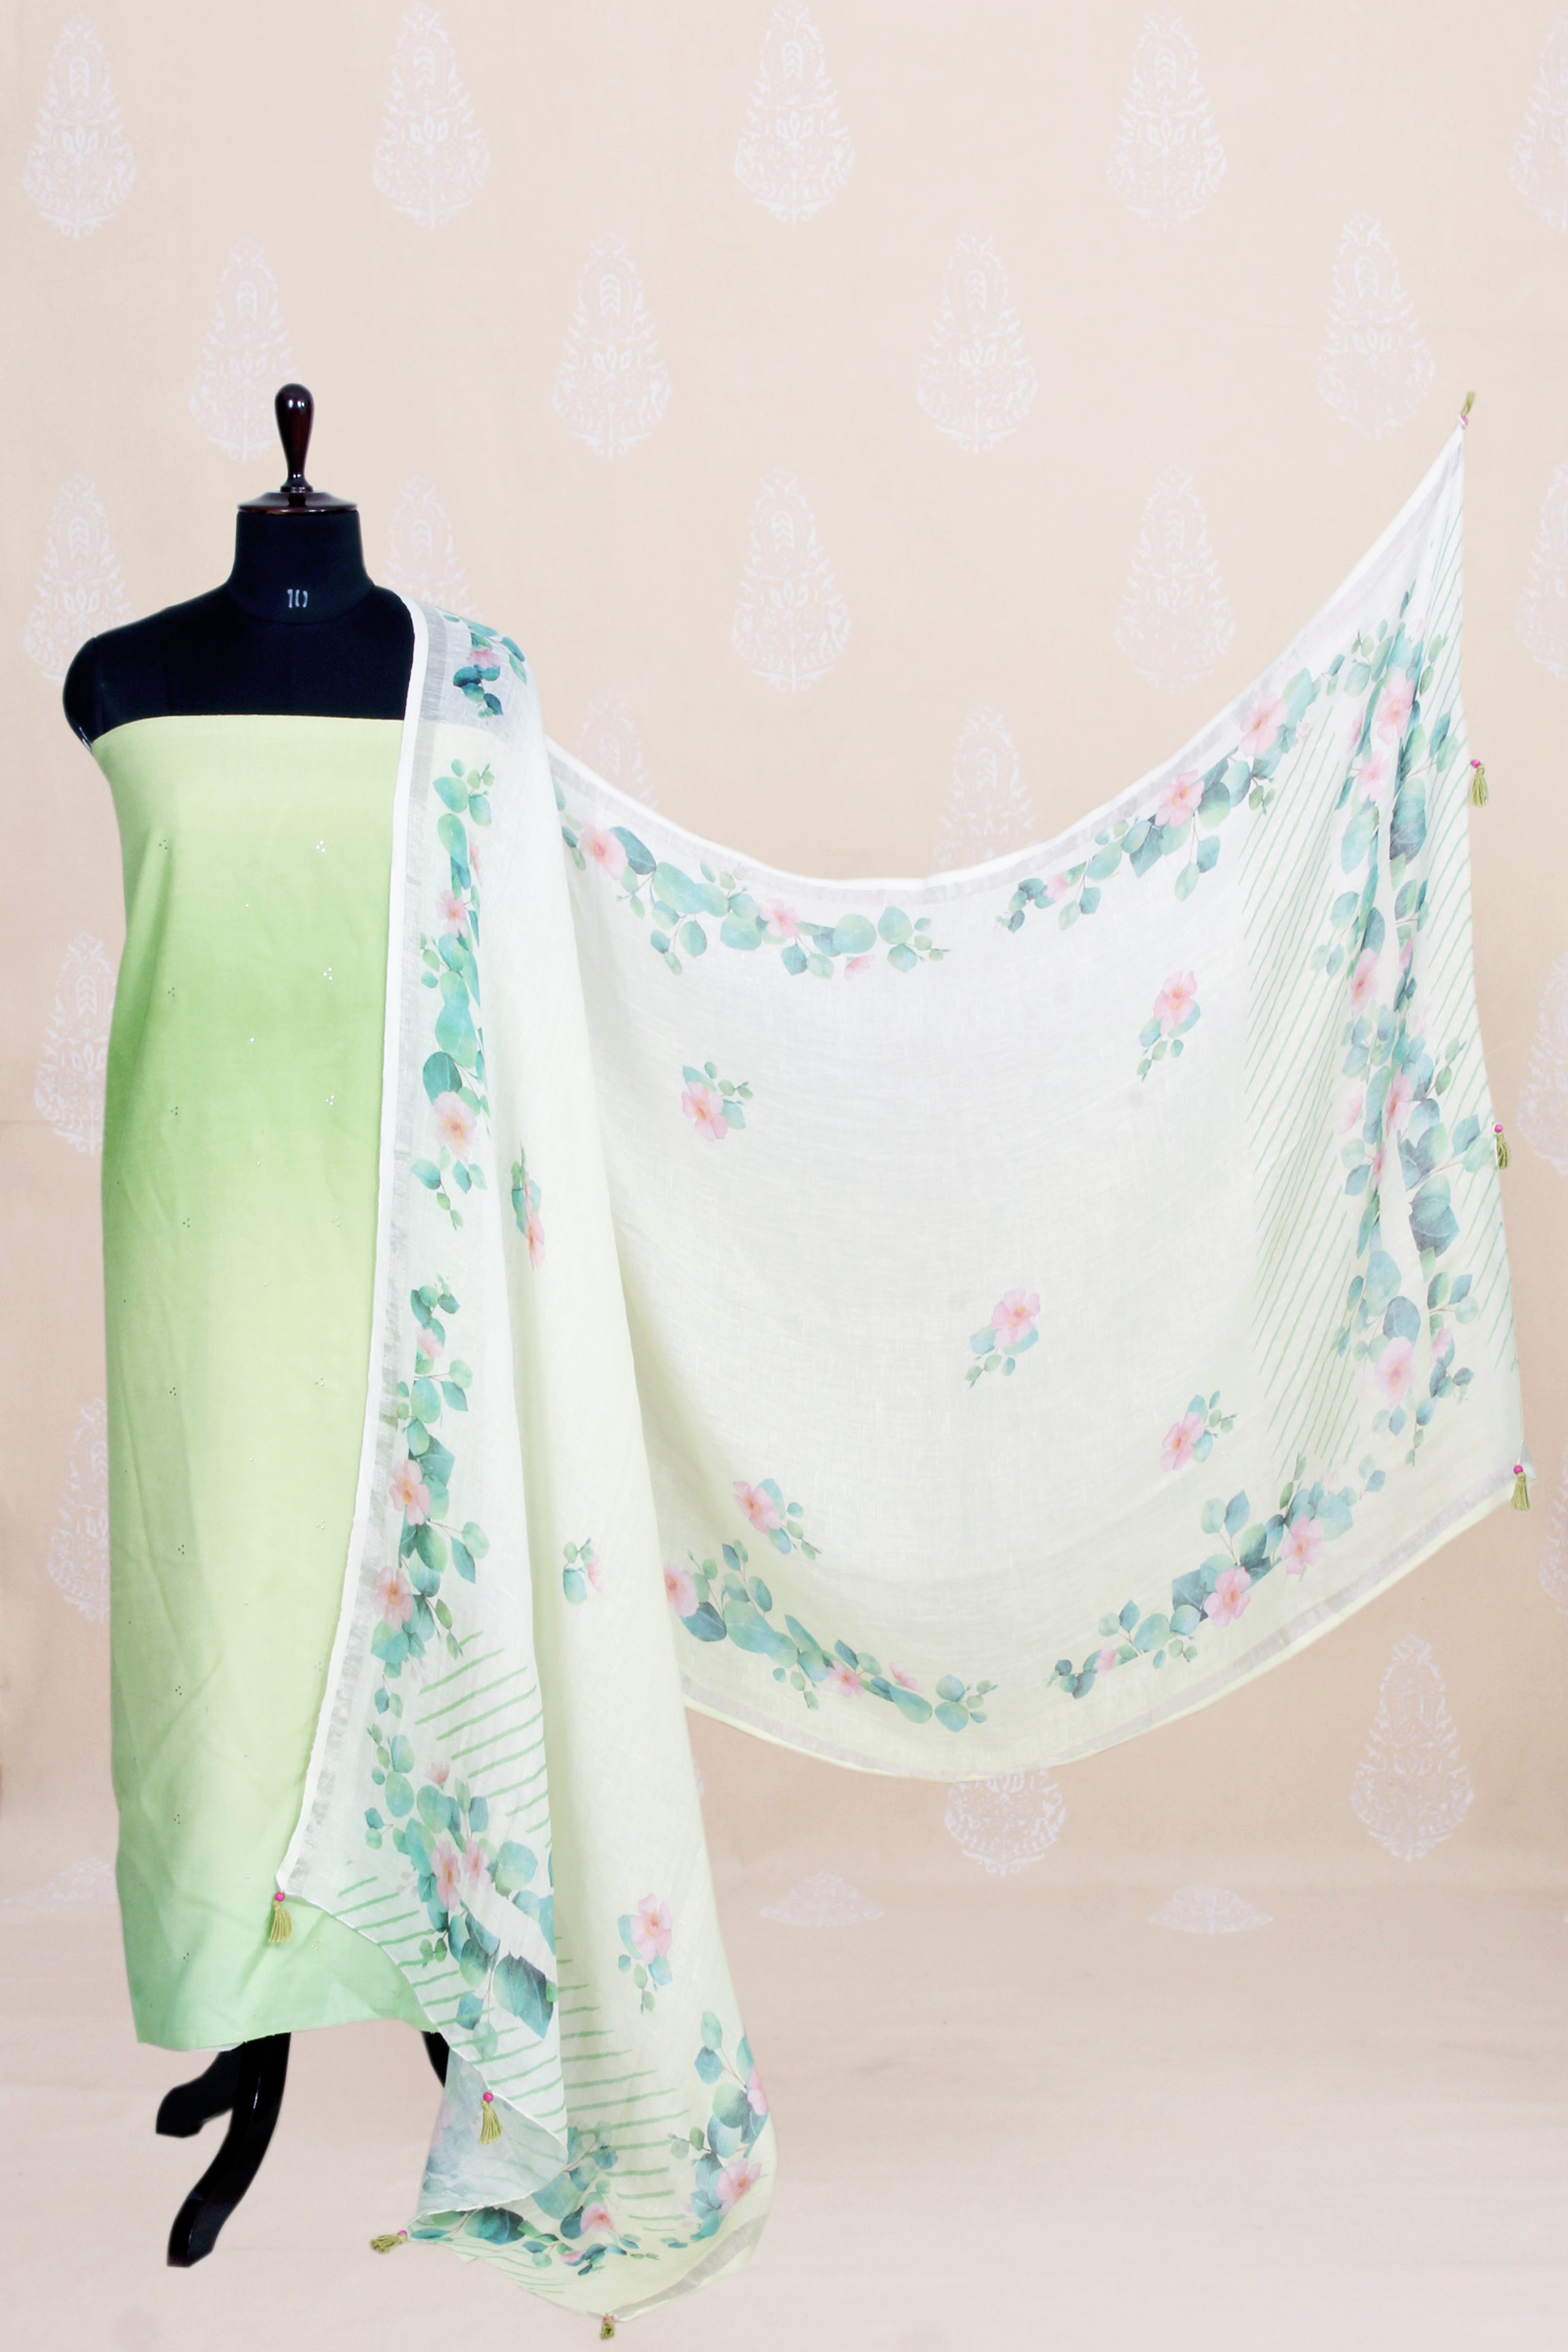 Handwoven Ombre Dyed Silk Kurtha Material With Mukaish Work-Mint Green - Tina Eapen Design Studio